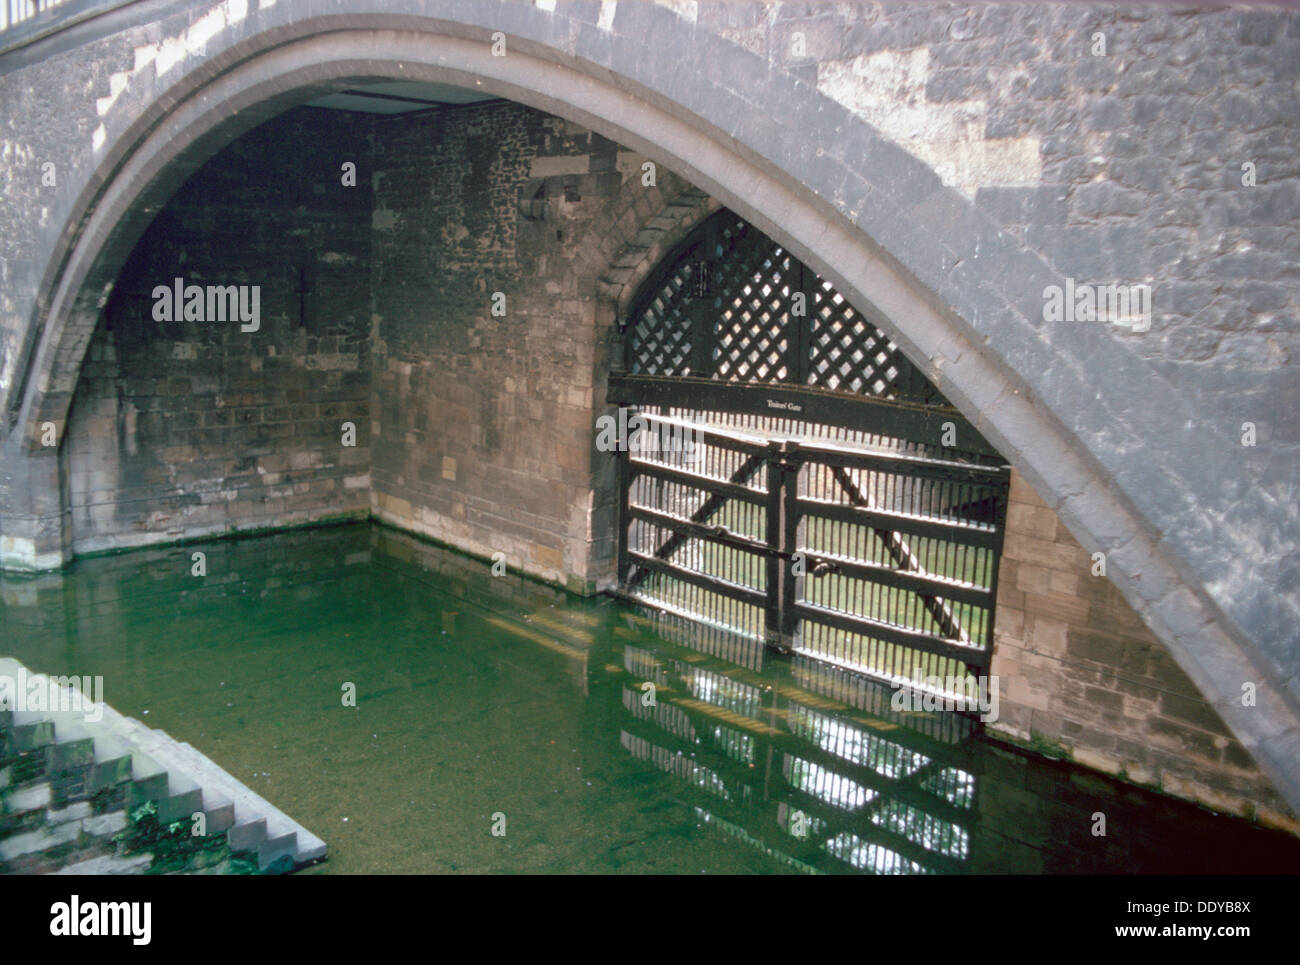 Traitor's Gate, Tower of London.  Artist: SR Edmondson - Stock Image